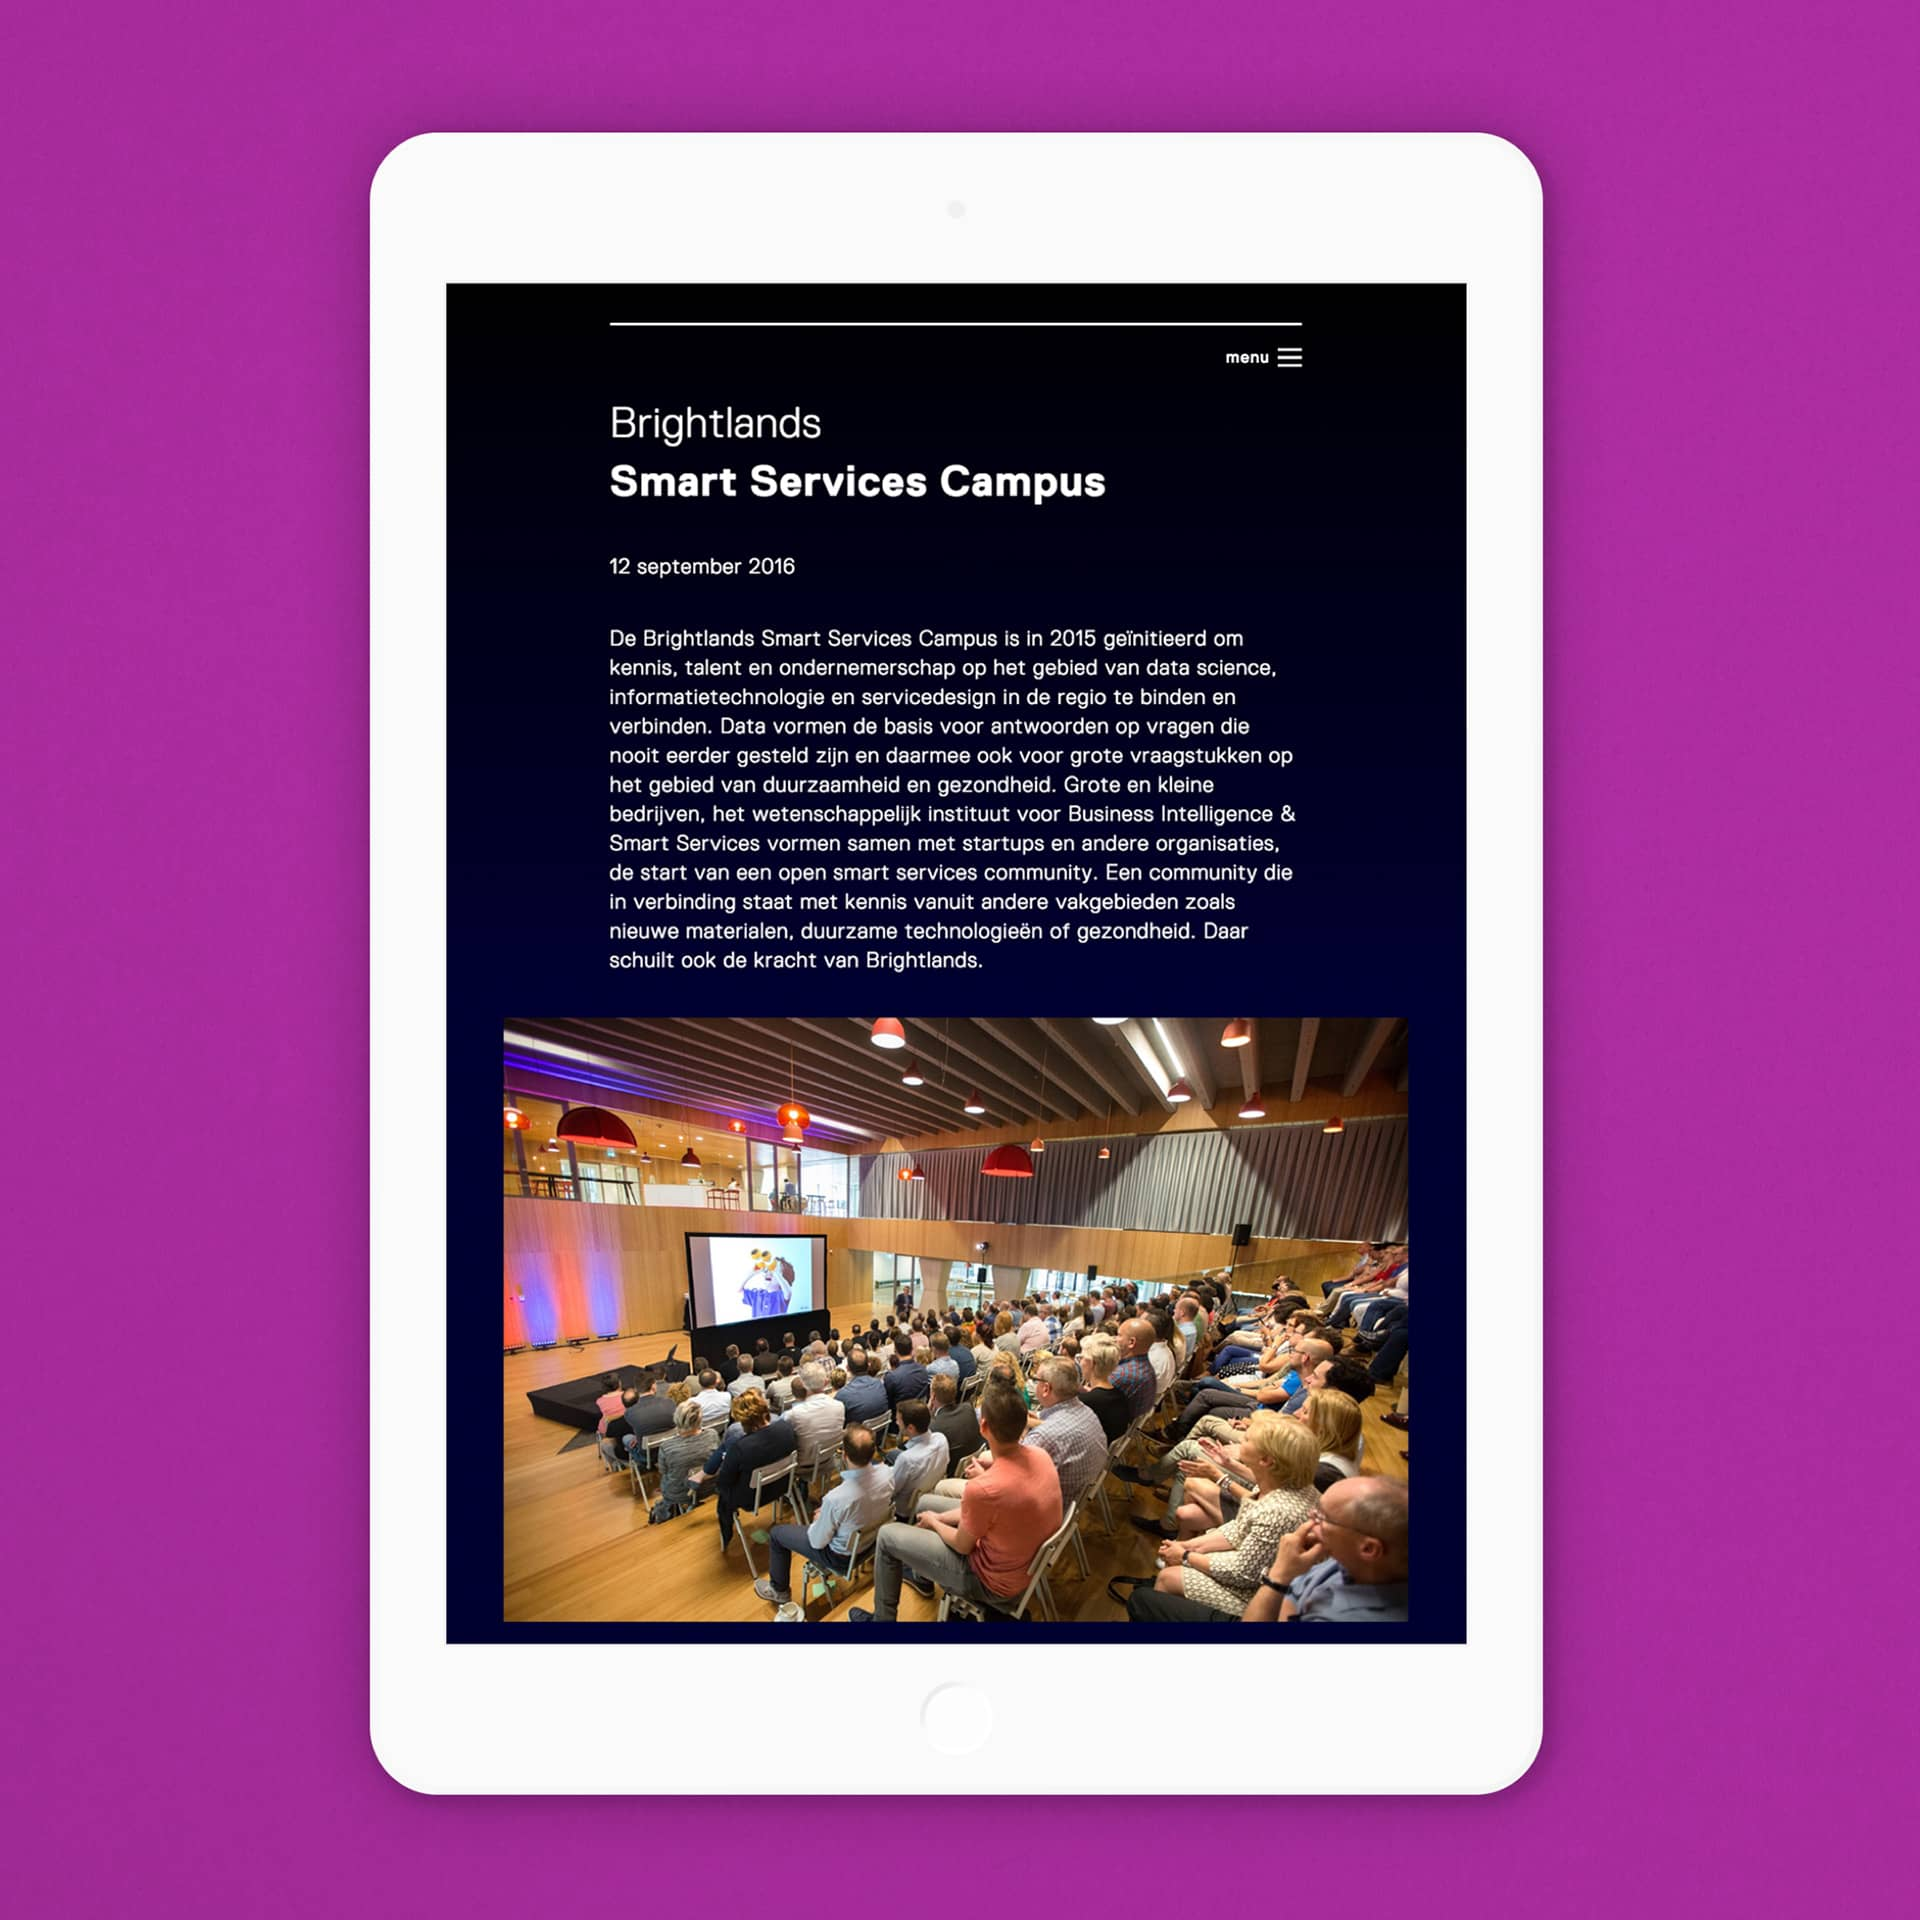 Mobile iPad website voor de opening van de Brightlands Smart Services Campus in Heerlen ontworpen en ontwikkeld door Saus